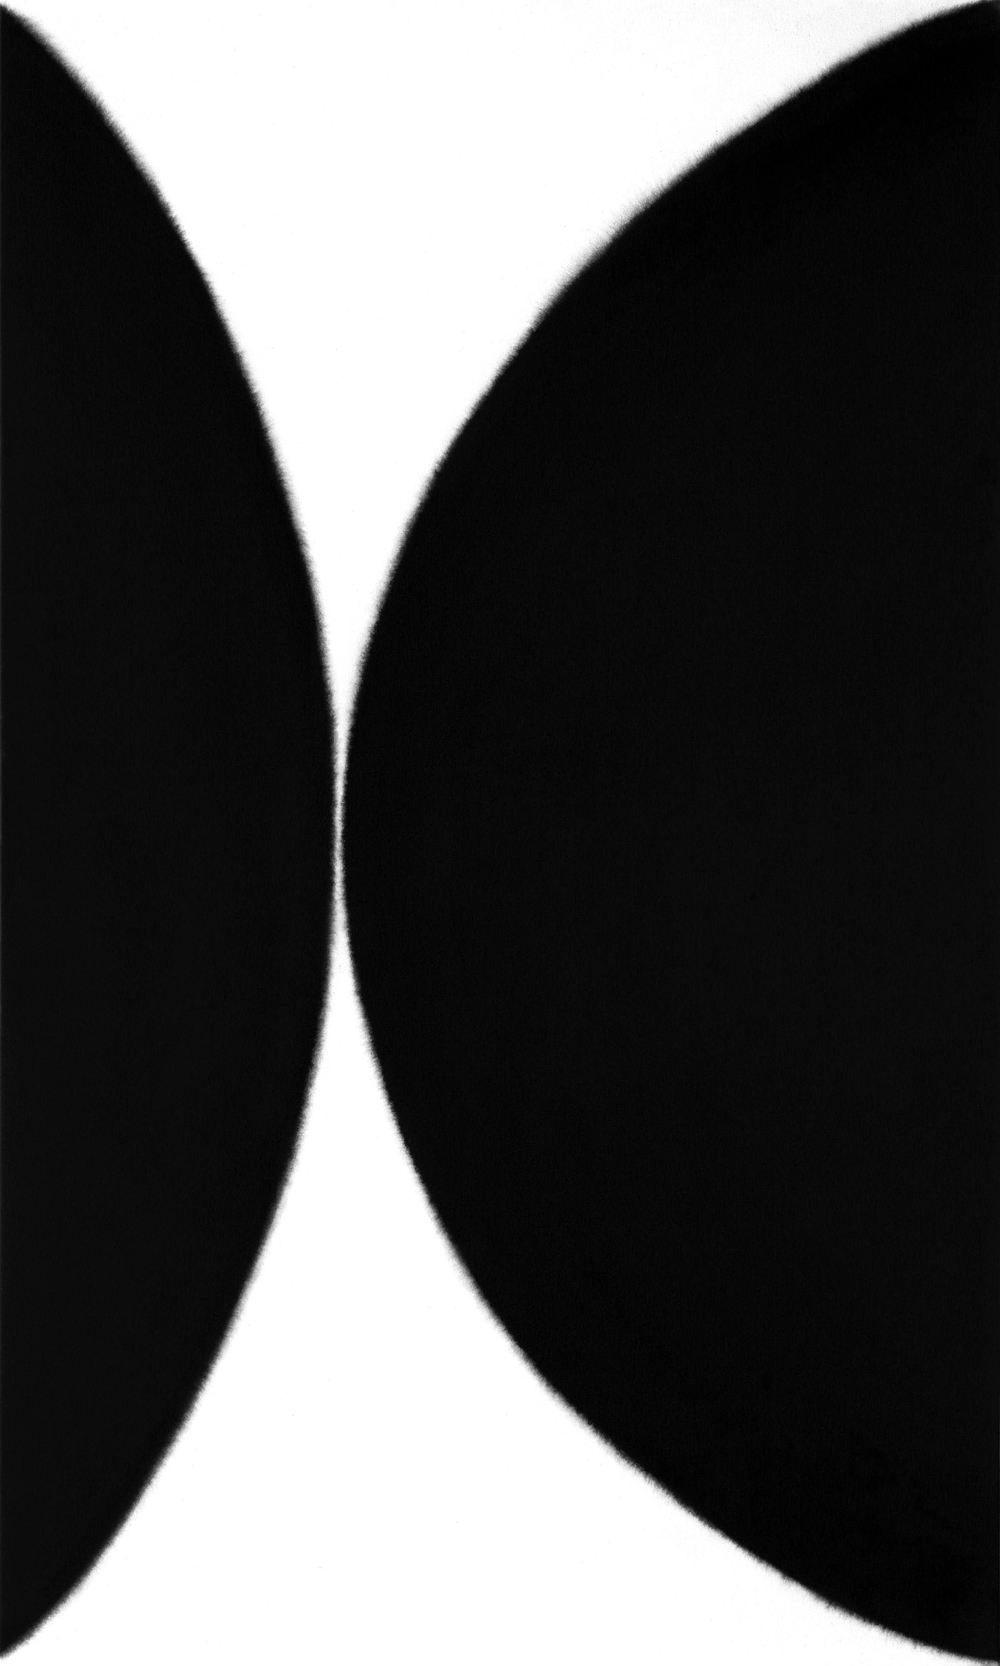 Flux #99, 2009, acrylic on canvas, 60 x 36 inches